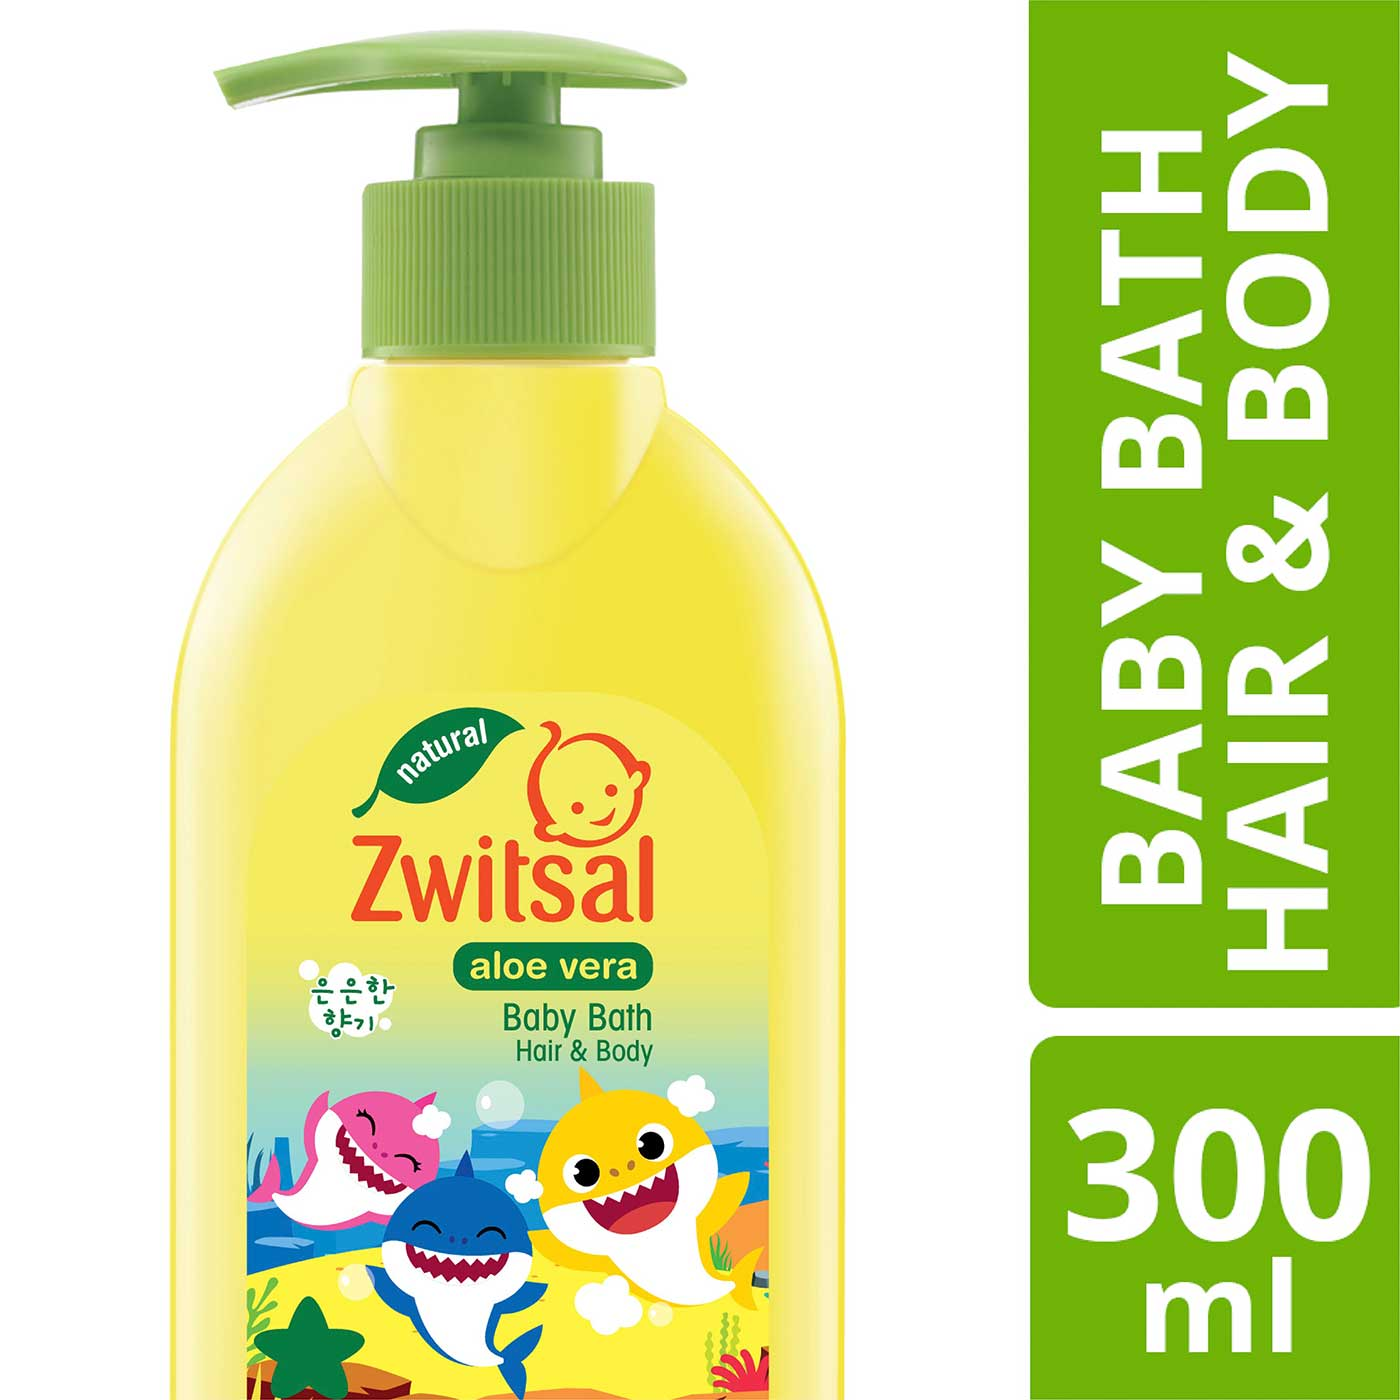 Zwitsal Bath Hair and Body Aloe Vera Baby Shark Edition 300ml